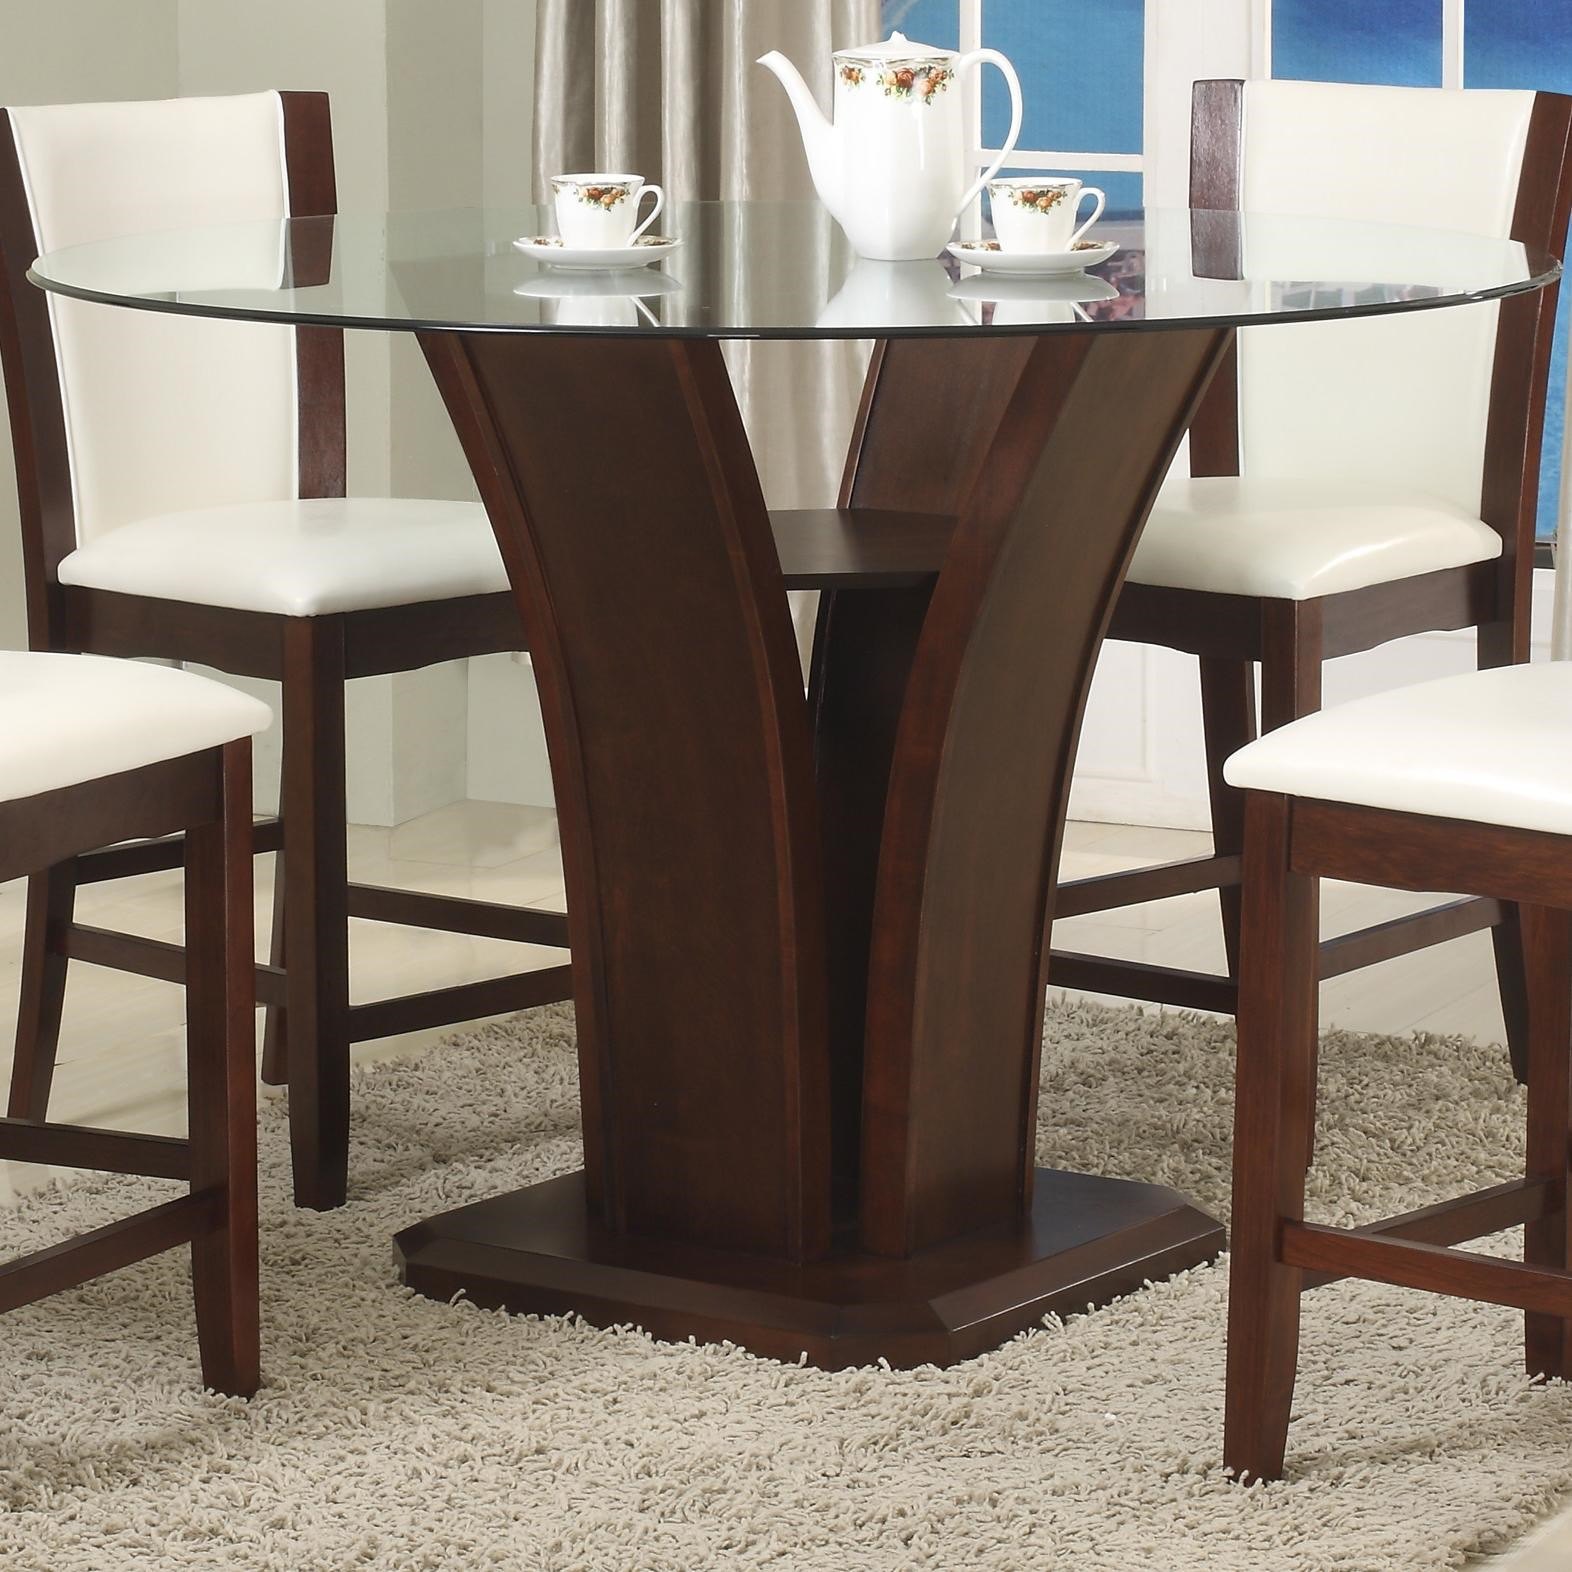 glass top counter height table and chairs crown mark camelia espressoglass counter height table espresso round glass top